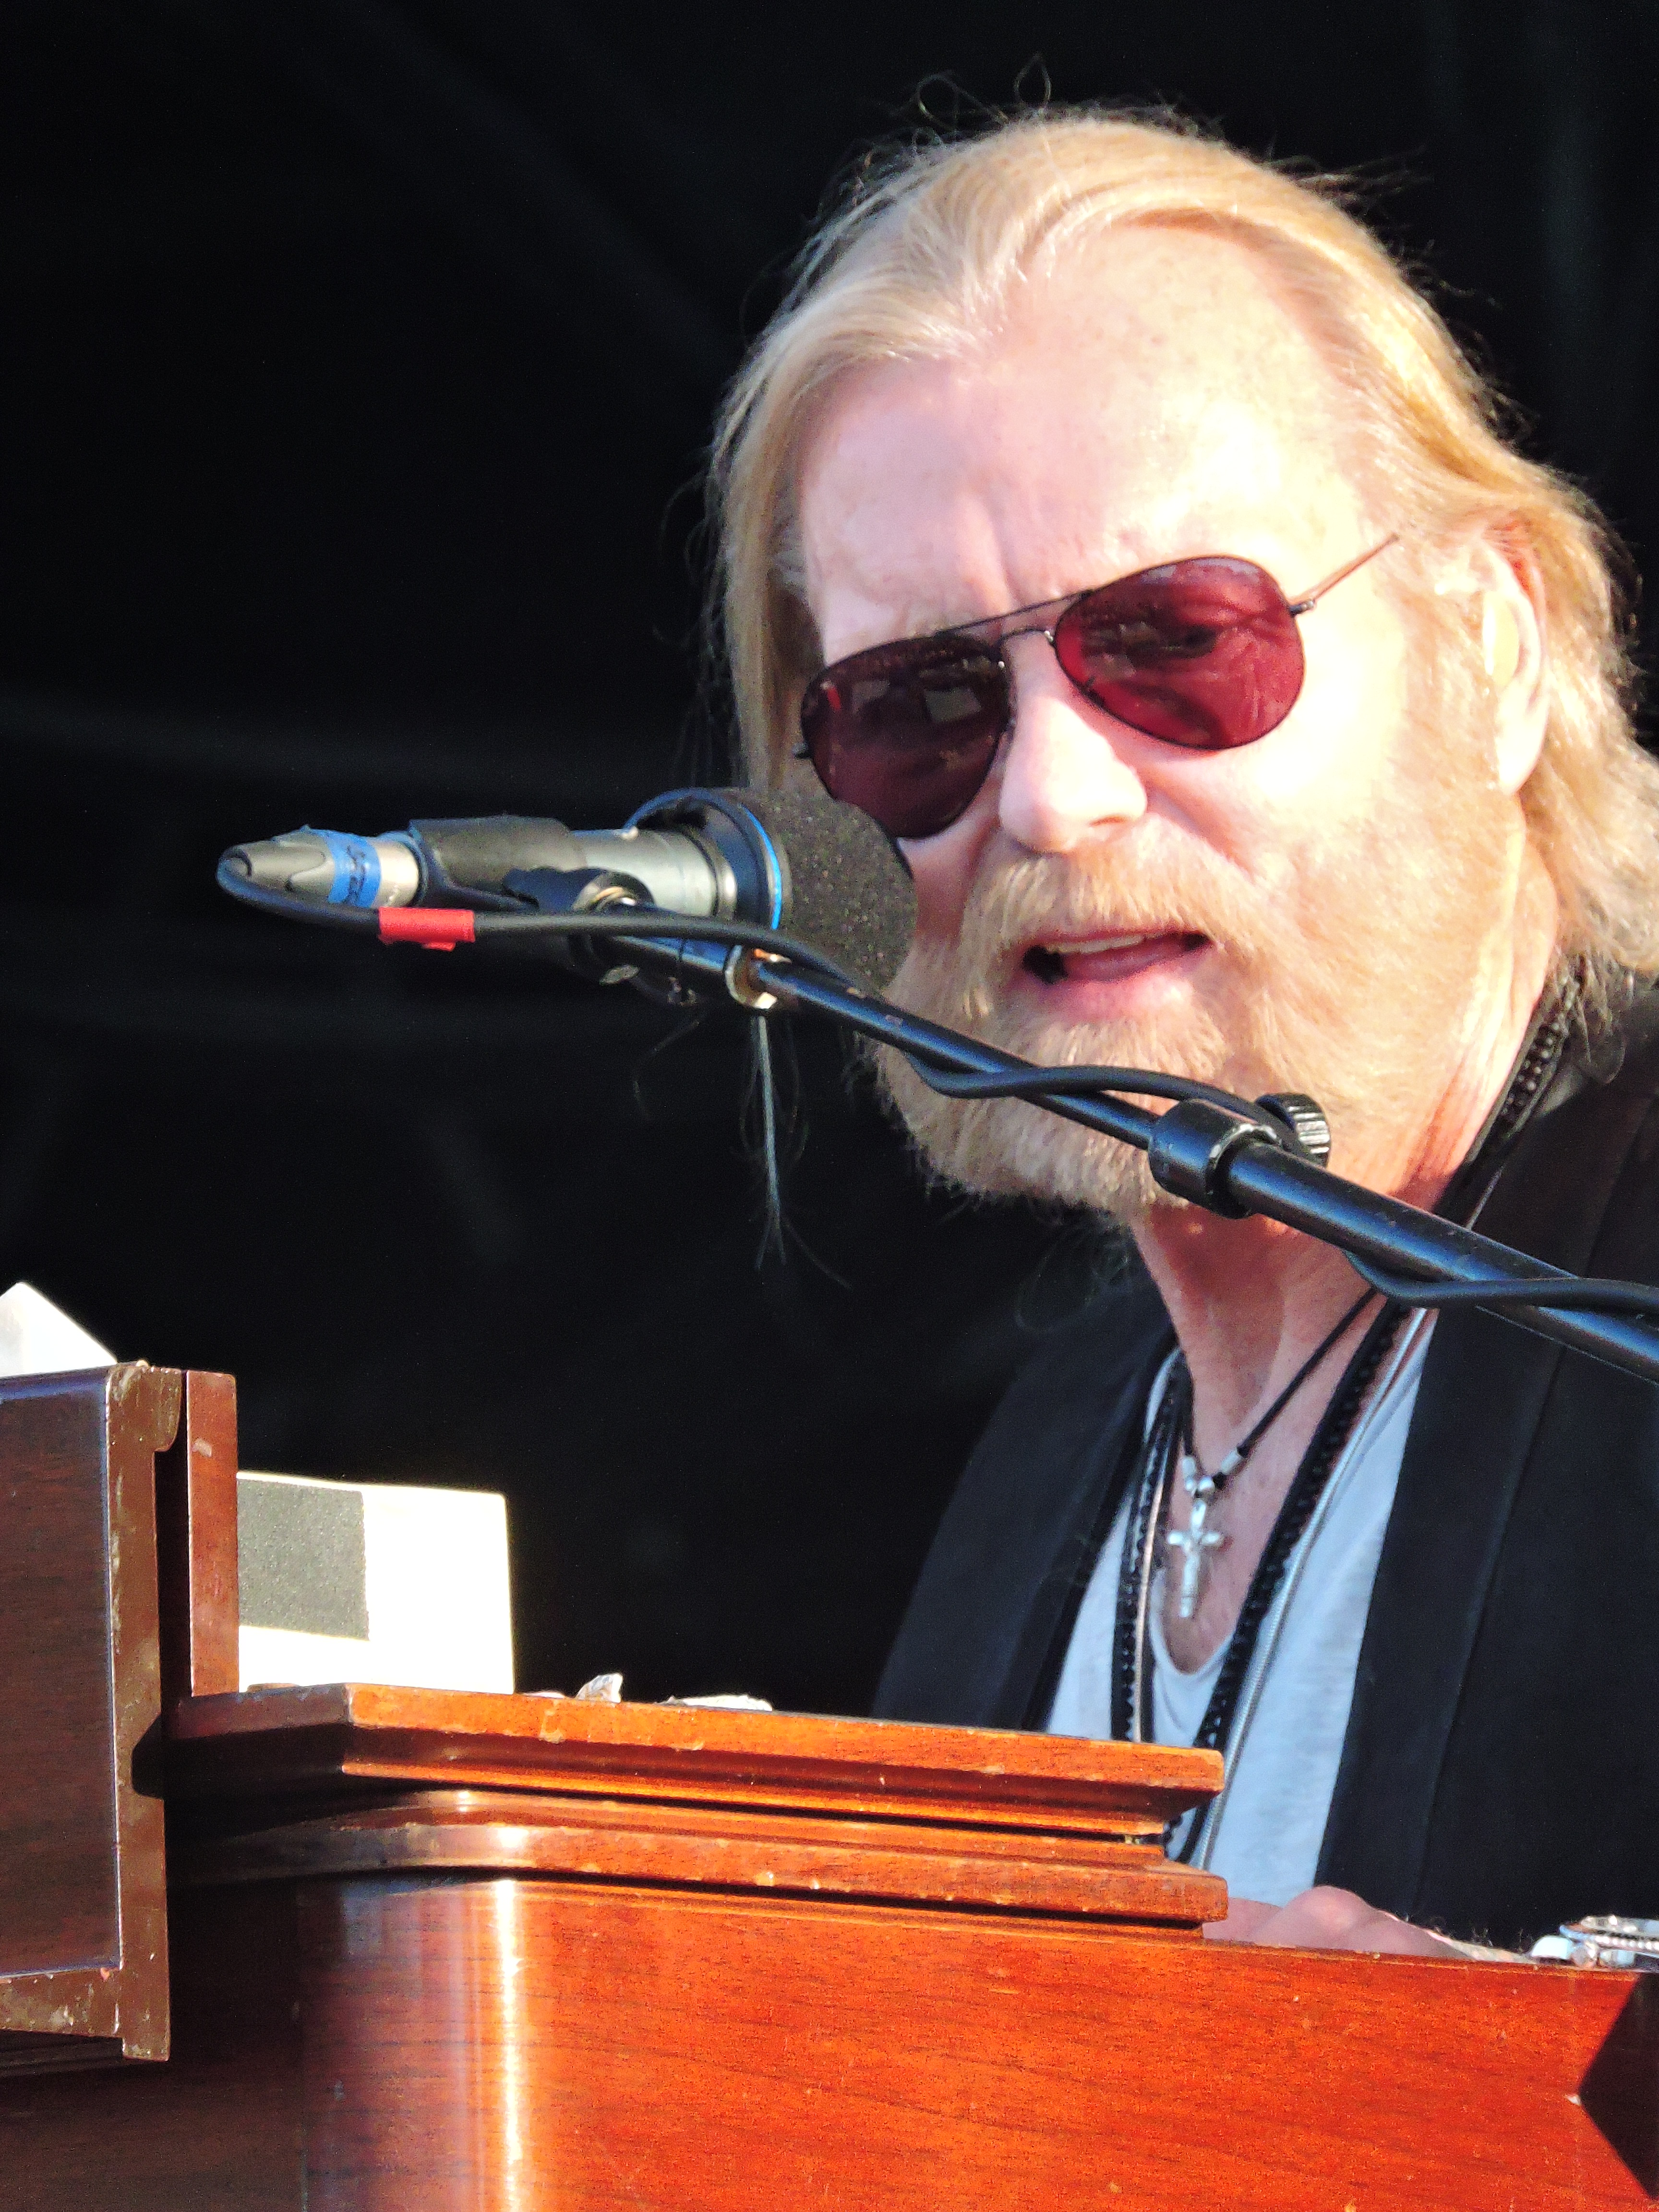 southern blood celebrating gregg allman a benefit for the grammy museum by frank j lombardo. Black Bedroom Furniture Sets. Home Design Ideas